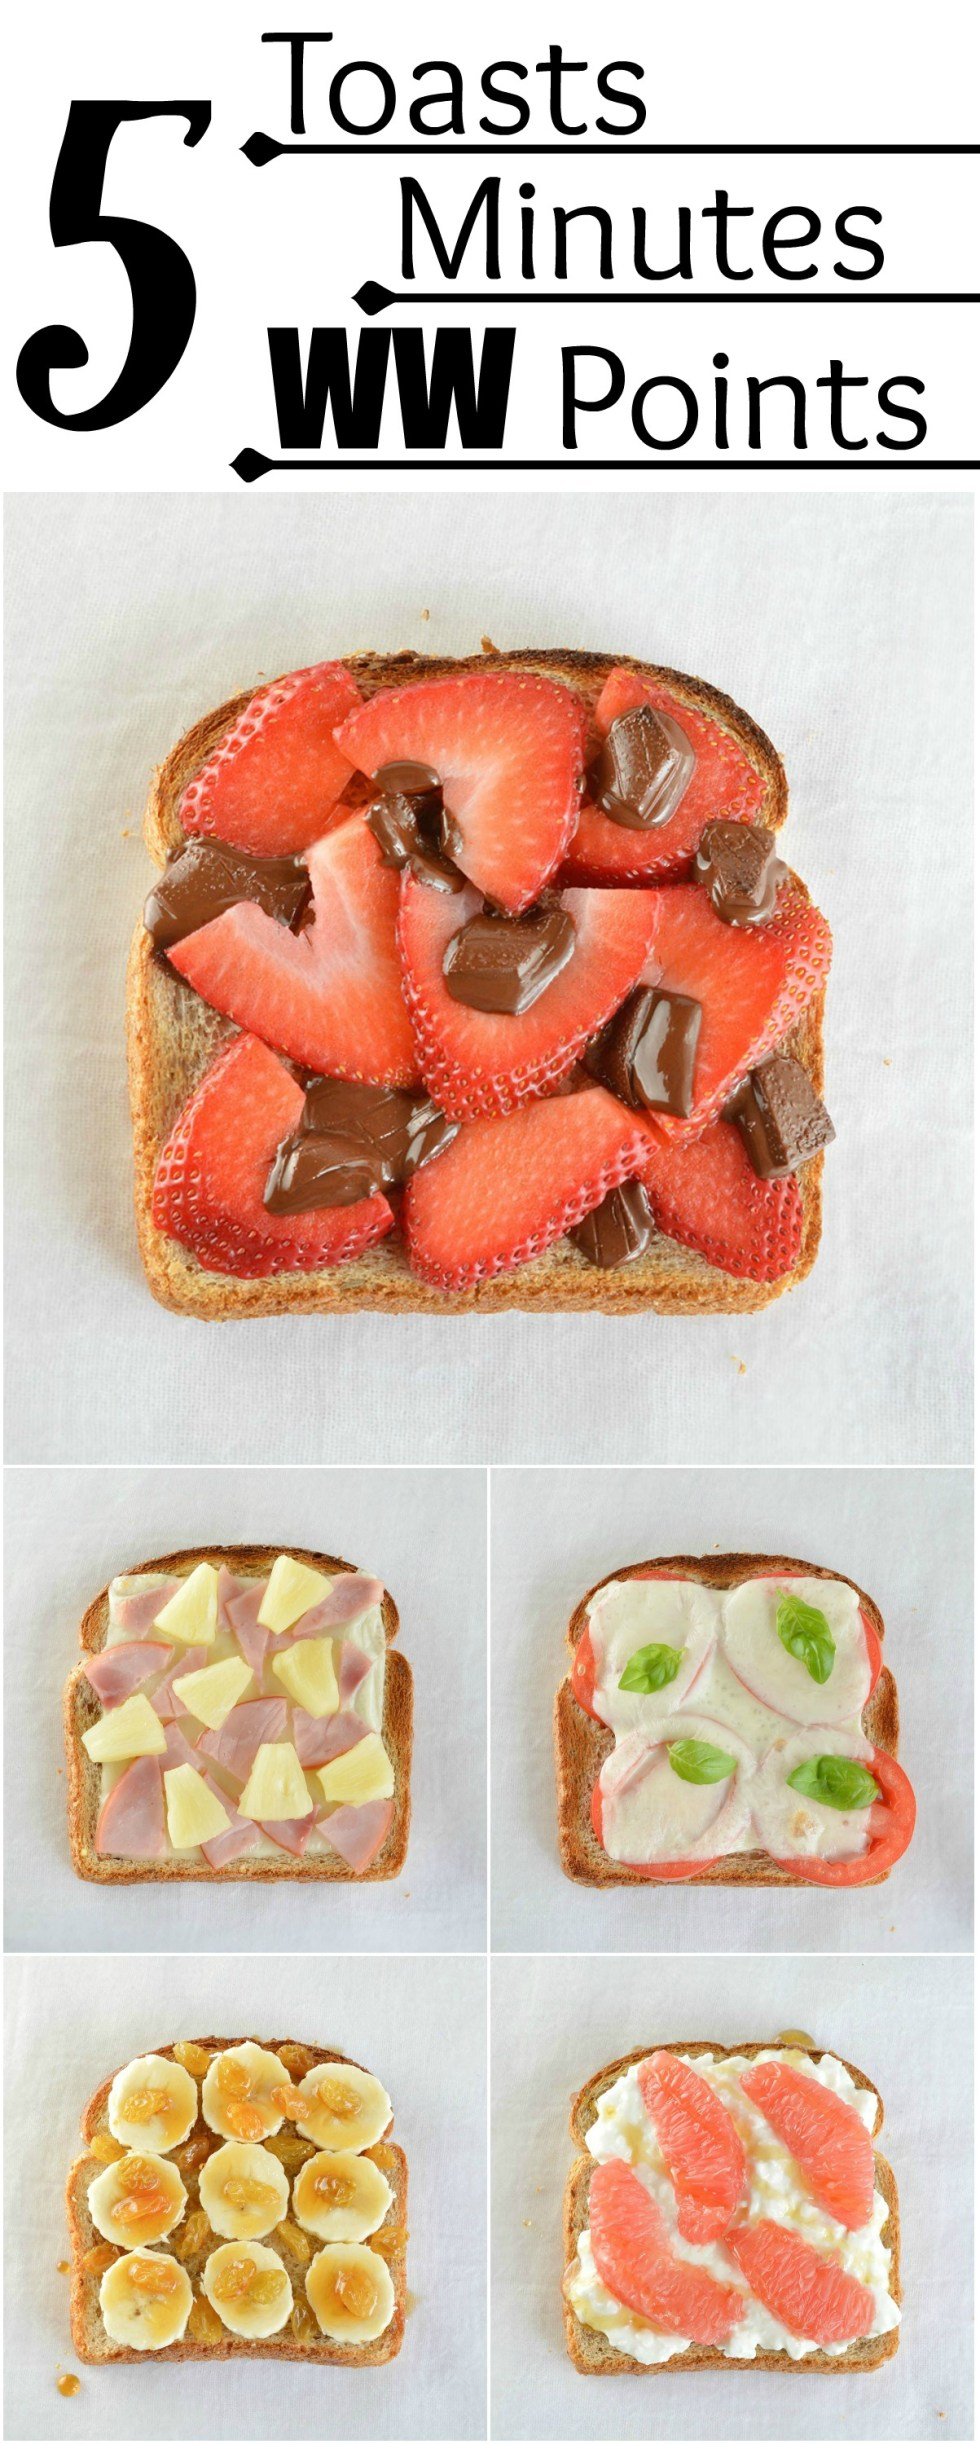 5 Minute Healthy Snack Ideas: 5 Toast Snacks, 5 Minutes Each, 5 Weight Watchers Points Each. Great for a satisfying breakfast, lunch or snack! #WeightWatchers